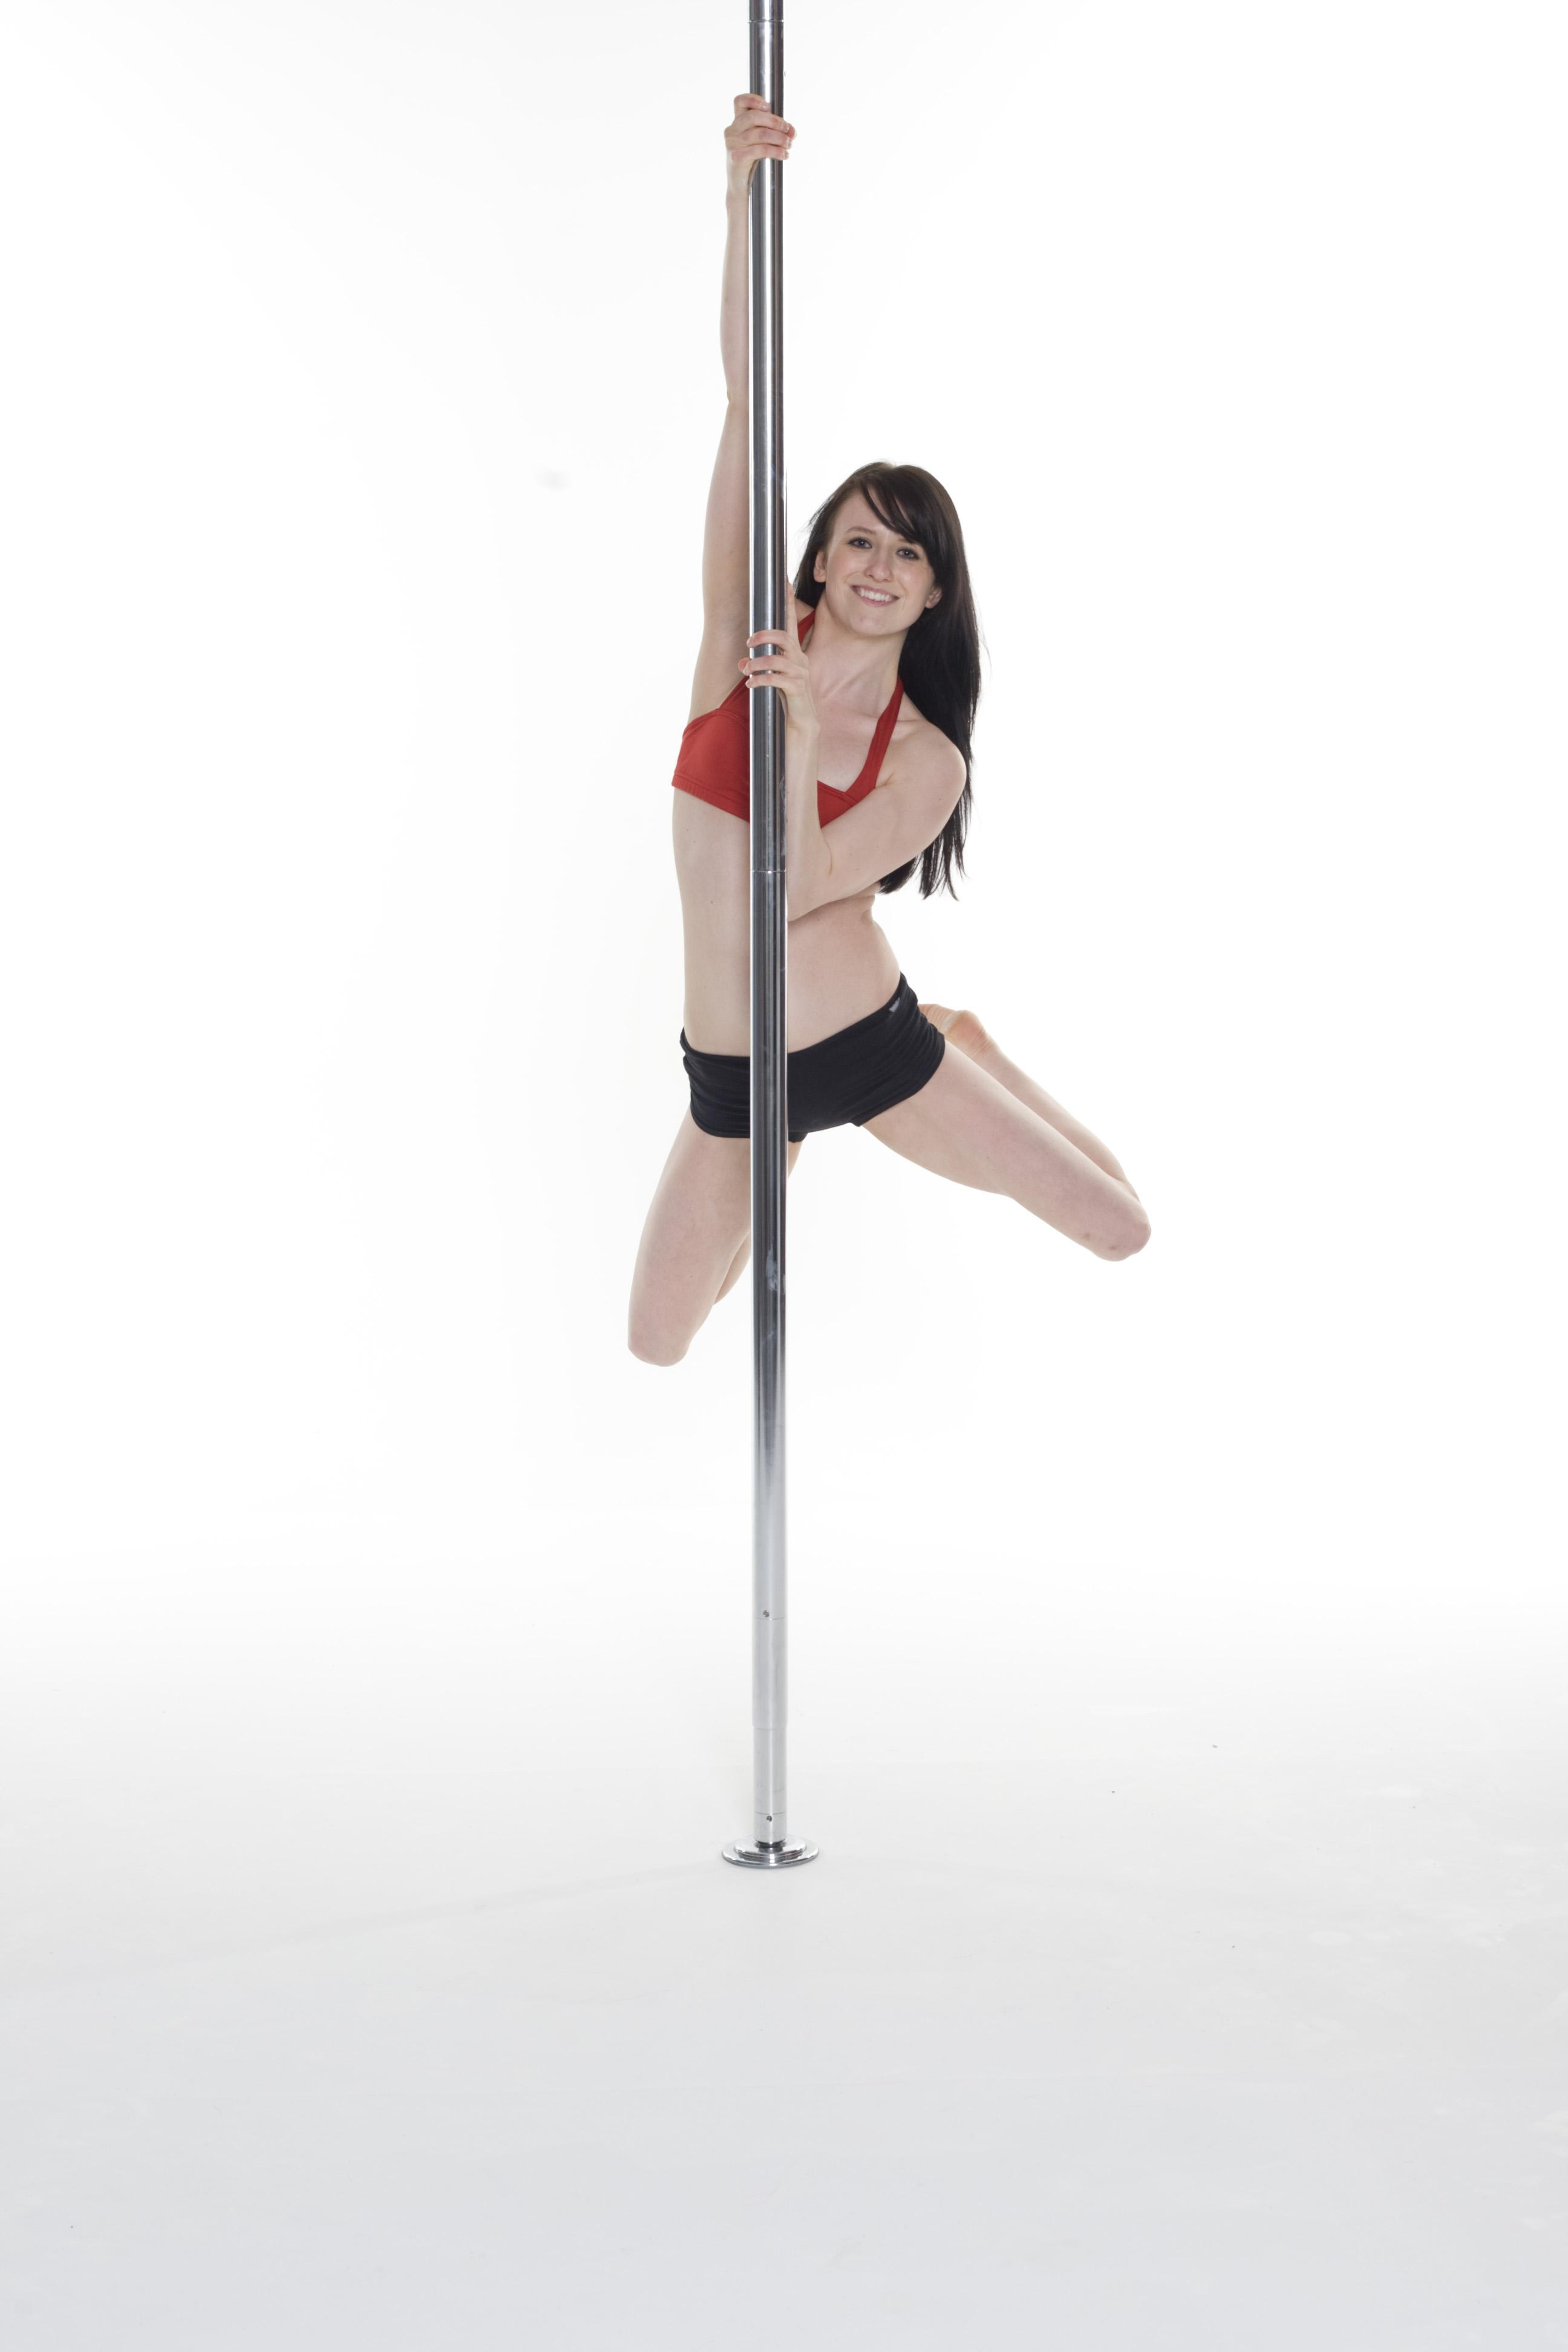 Pole Fitness Beginners Instructor Training Co